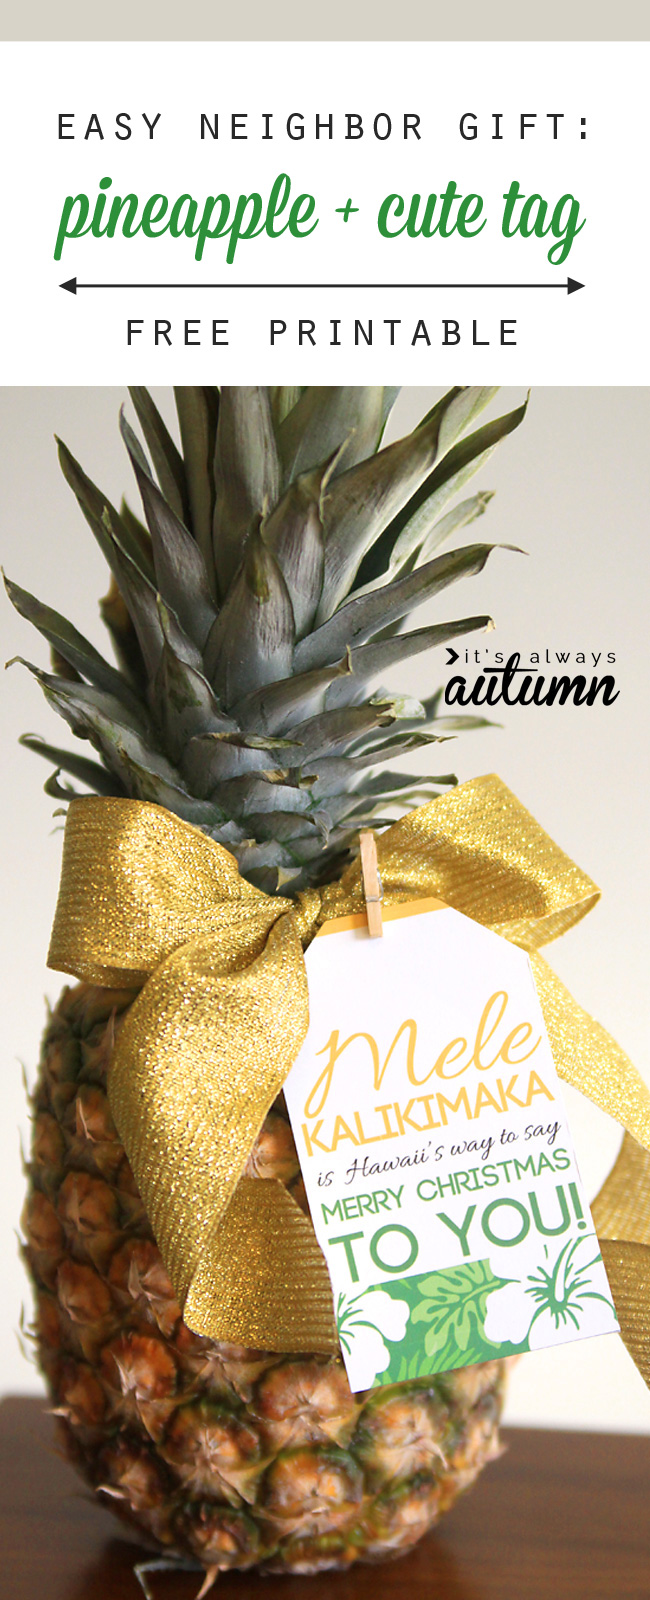 Neighbor Christmas Gift Ideas | Mele Kalikimaka Pineapple Gift | It's Always Autumn